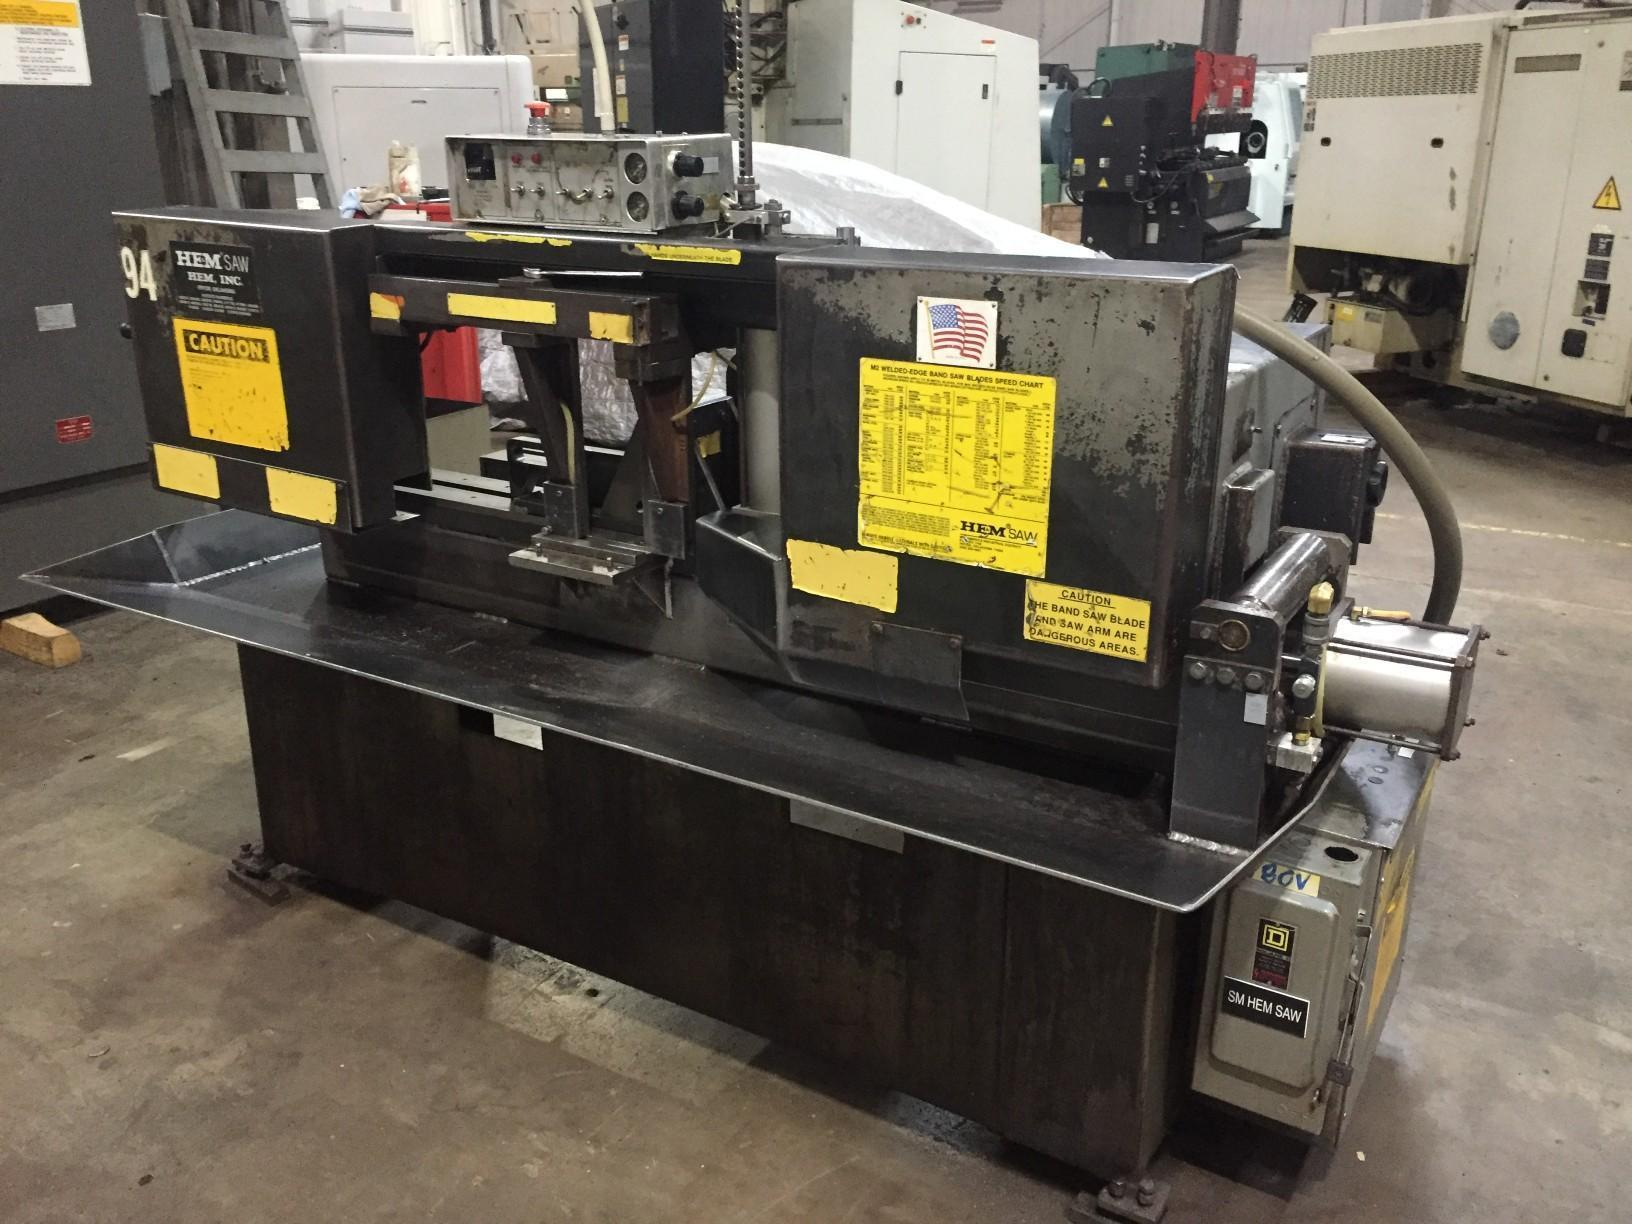 PREOWNED HEMSAW AUTOMATIC HORIZONTAL BAND SAW, MODEL #: H90A B/F, S/N: 437695, YEAR: 1995